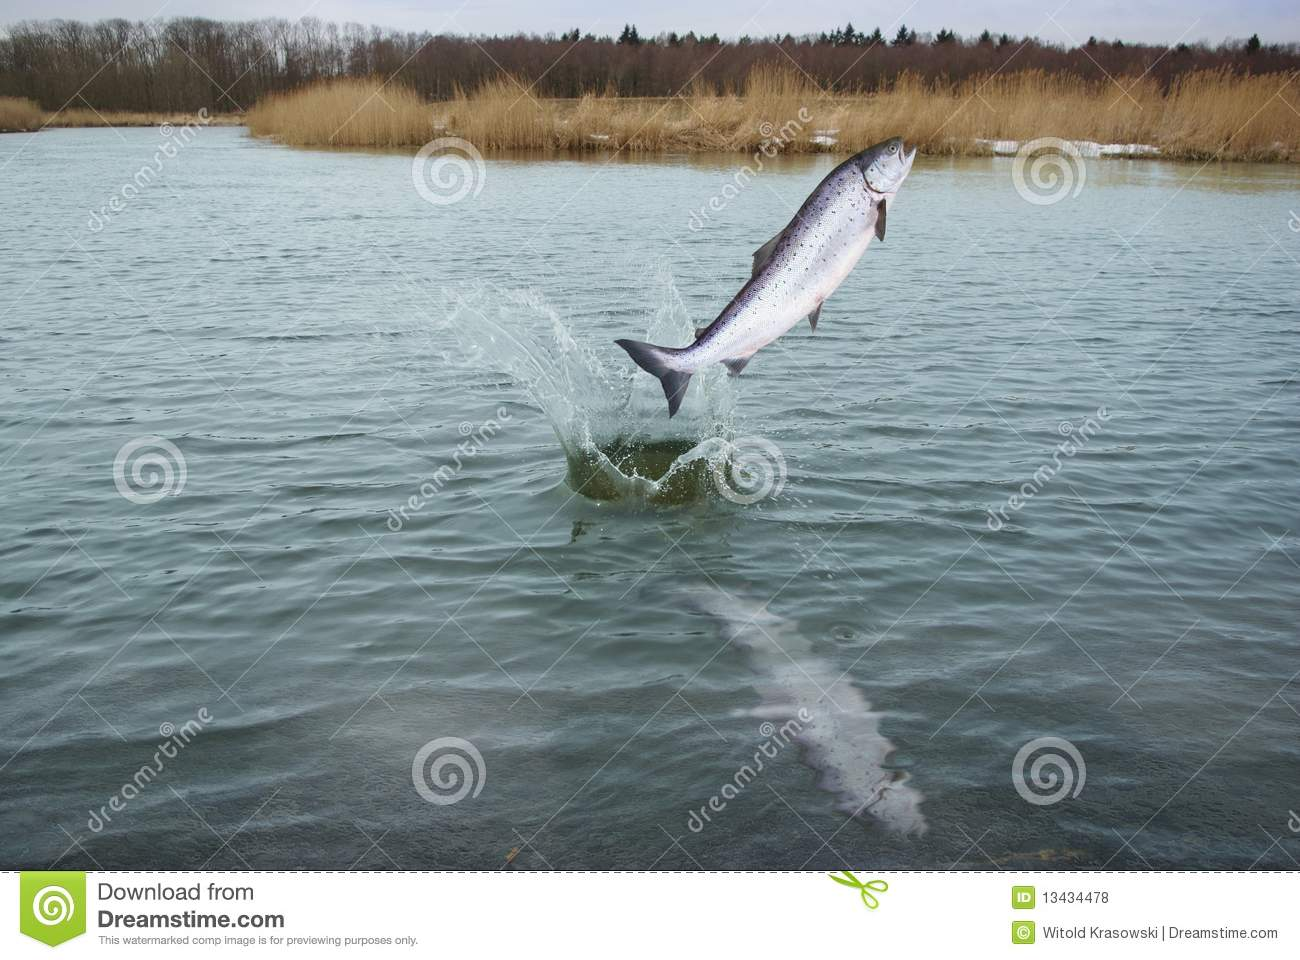 Jumping Out From Water Salmon Stock Photo - Image of luxury